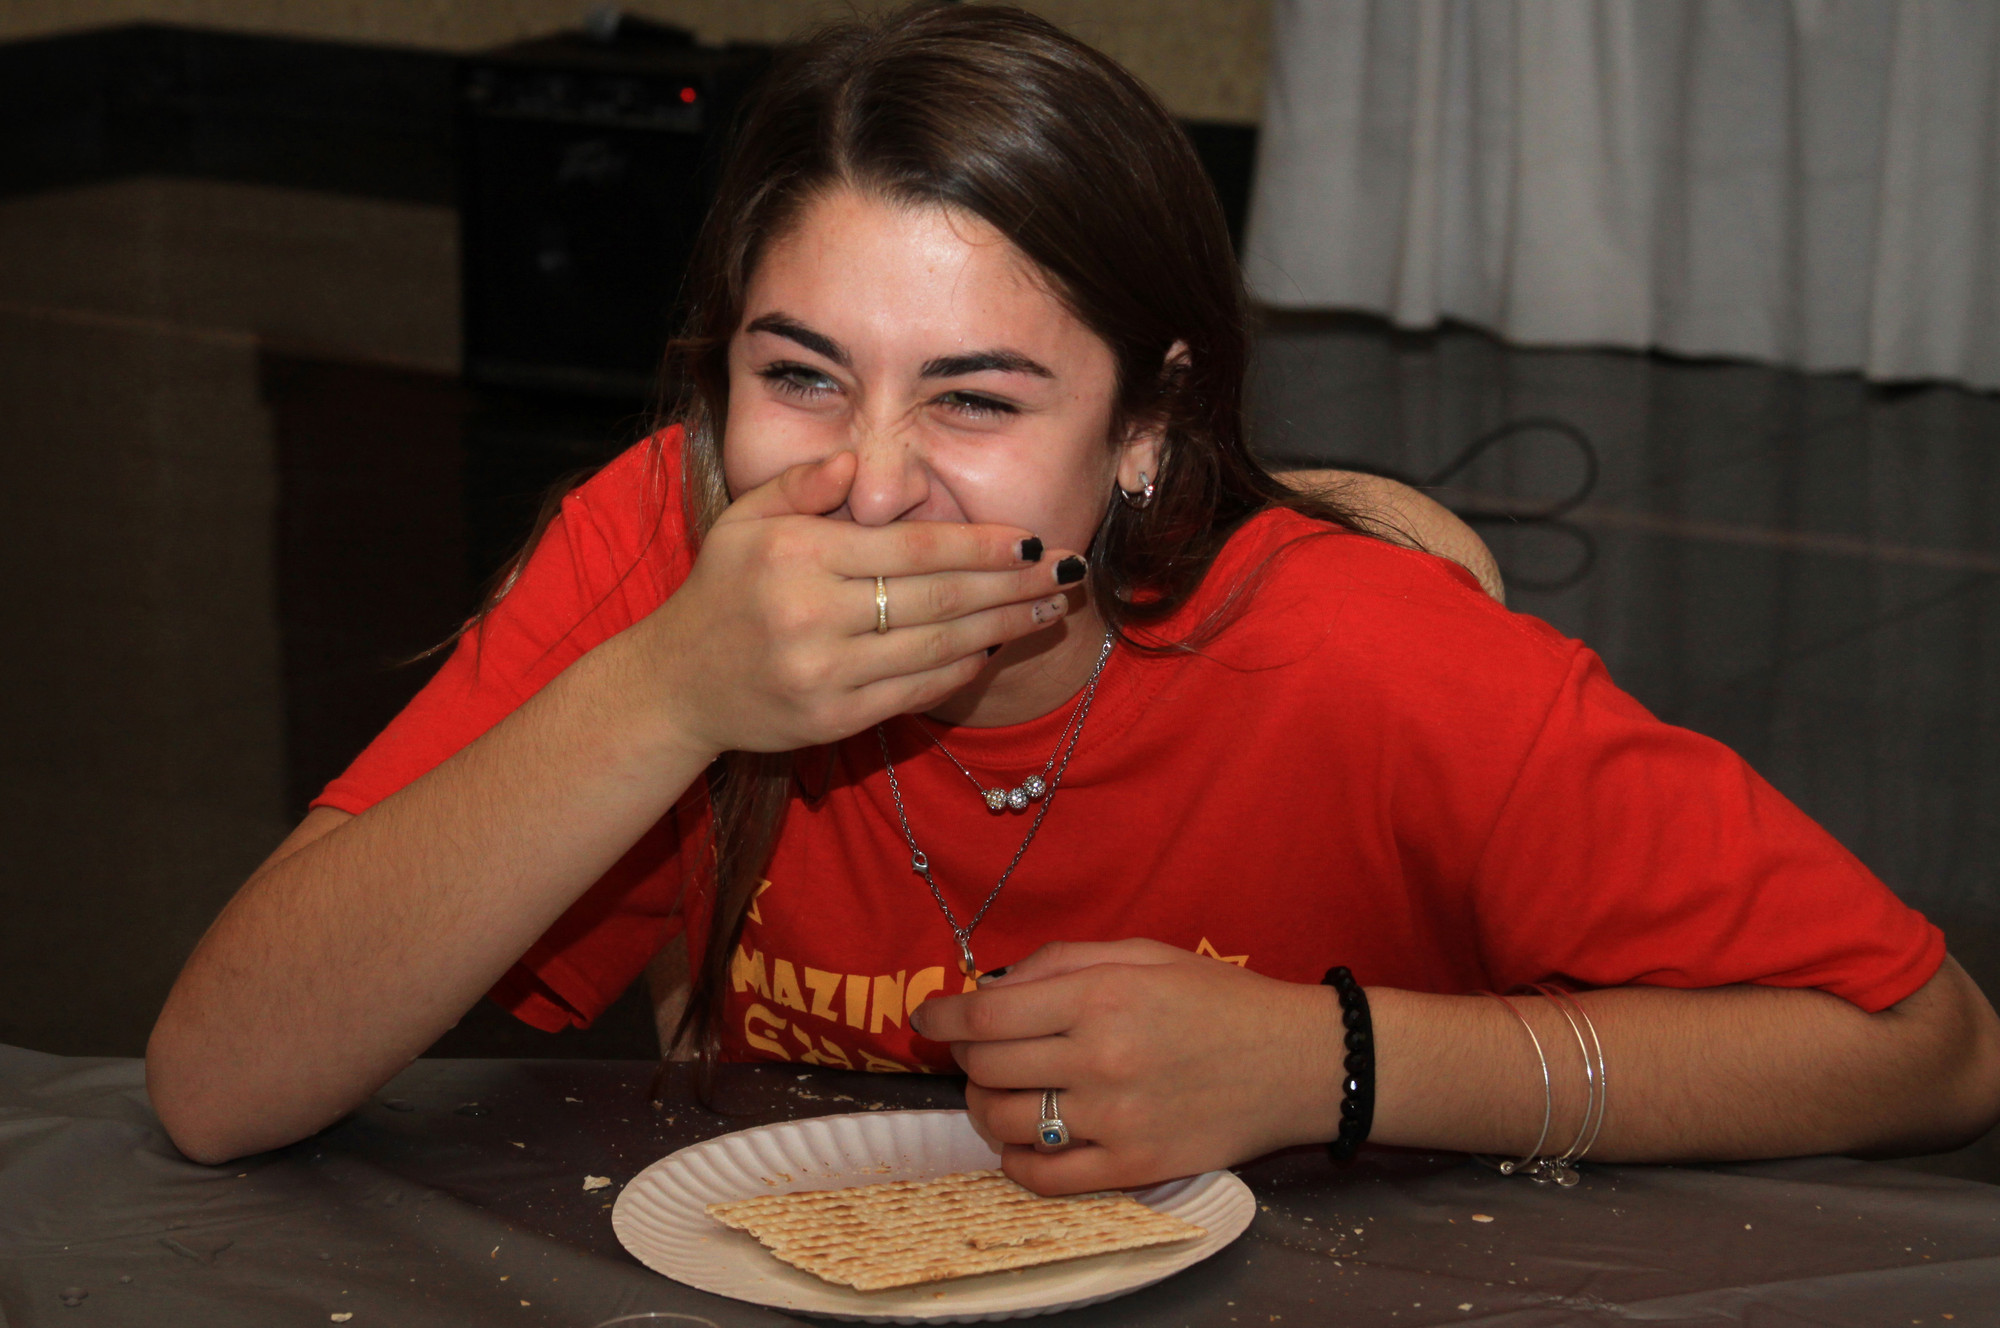 Julia Rosenberg, 13, did her best to finish two plain boards of matzah, sans water, in an eating competition near the end of the challenge.